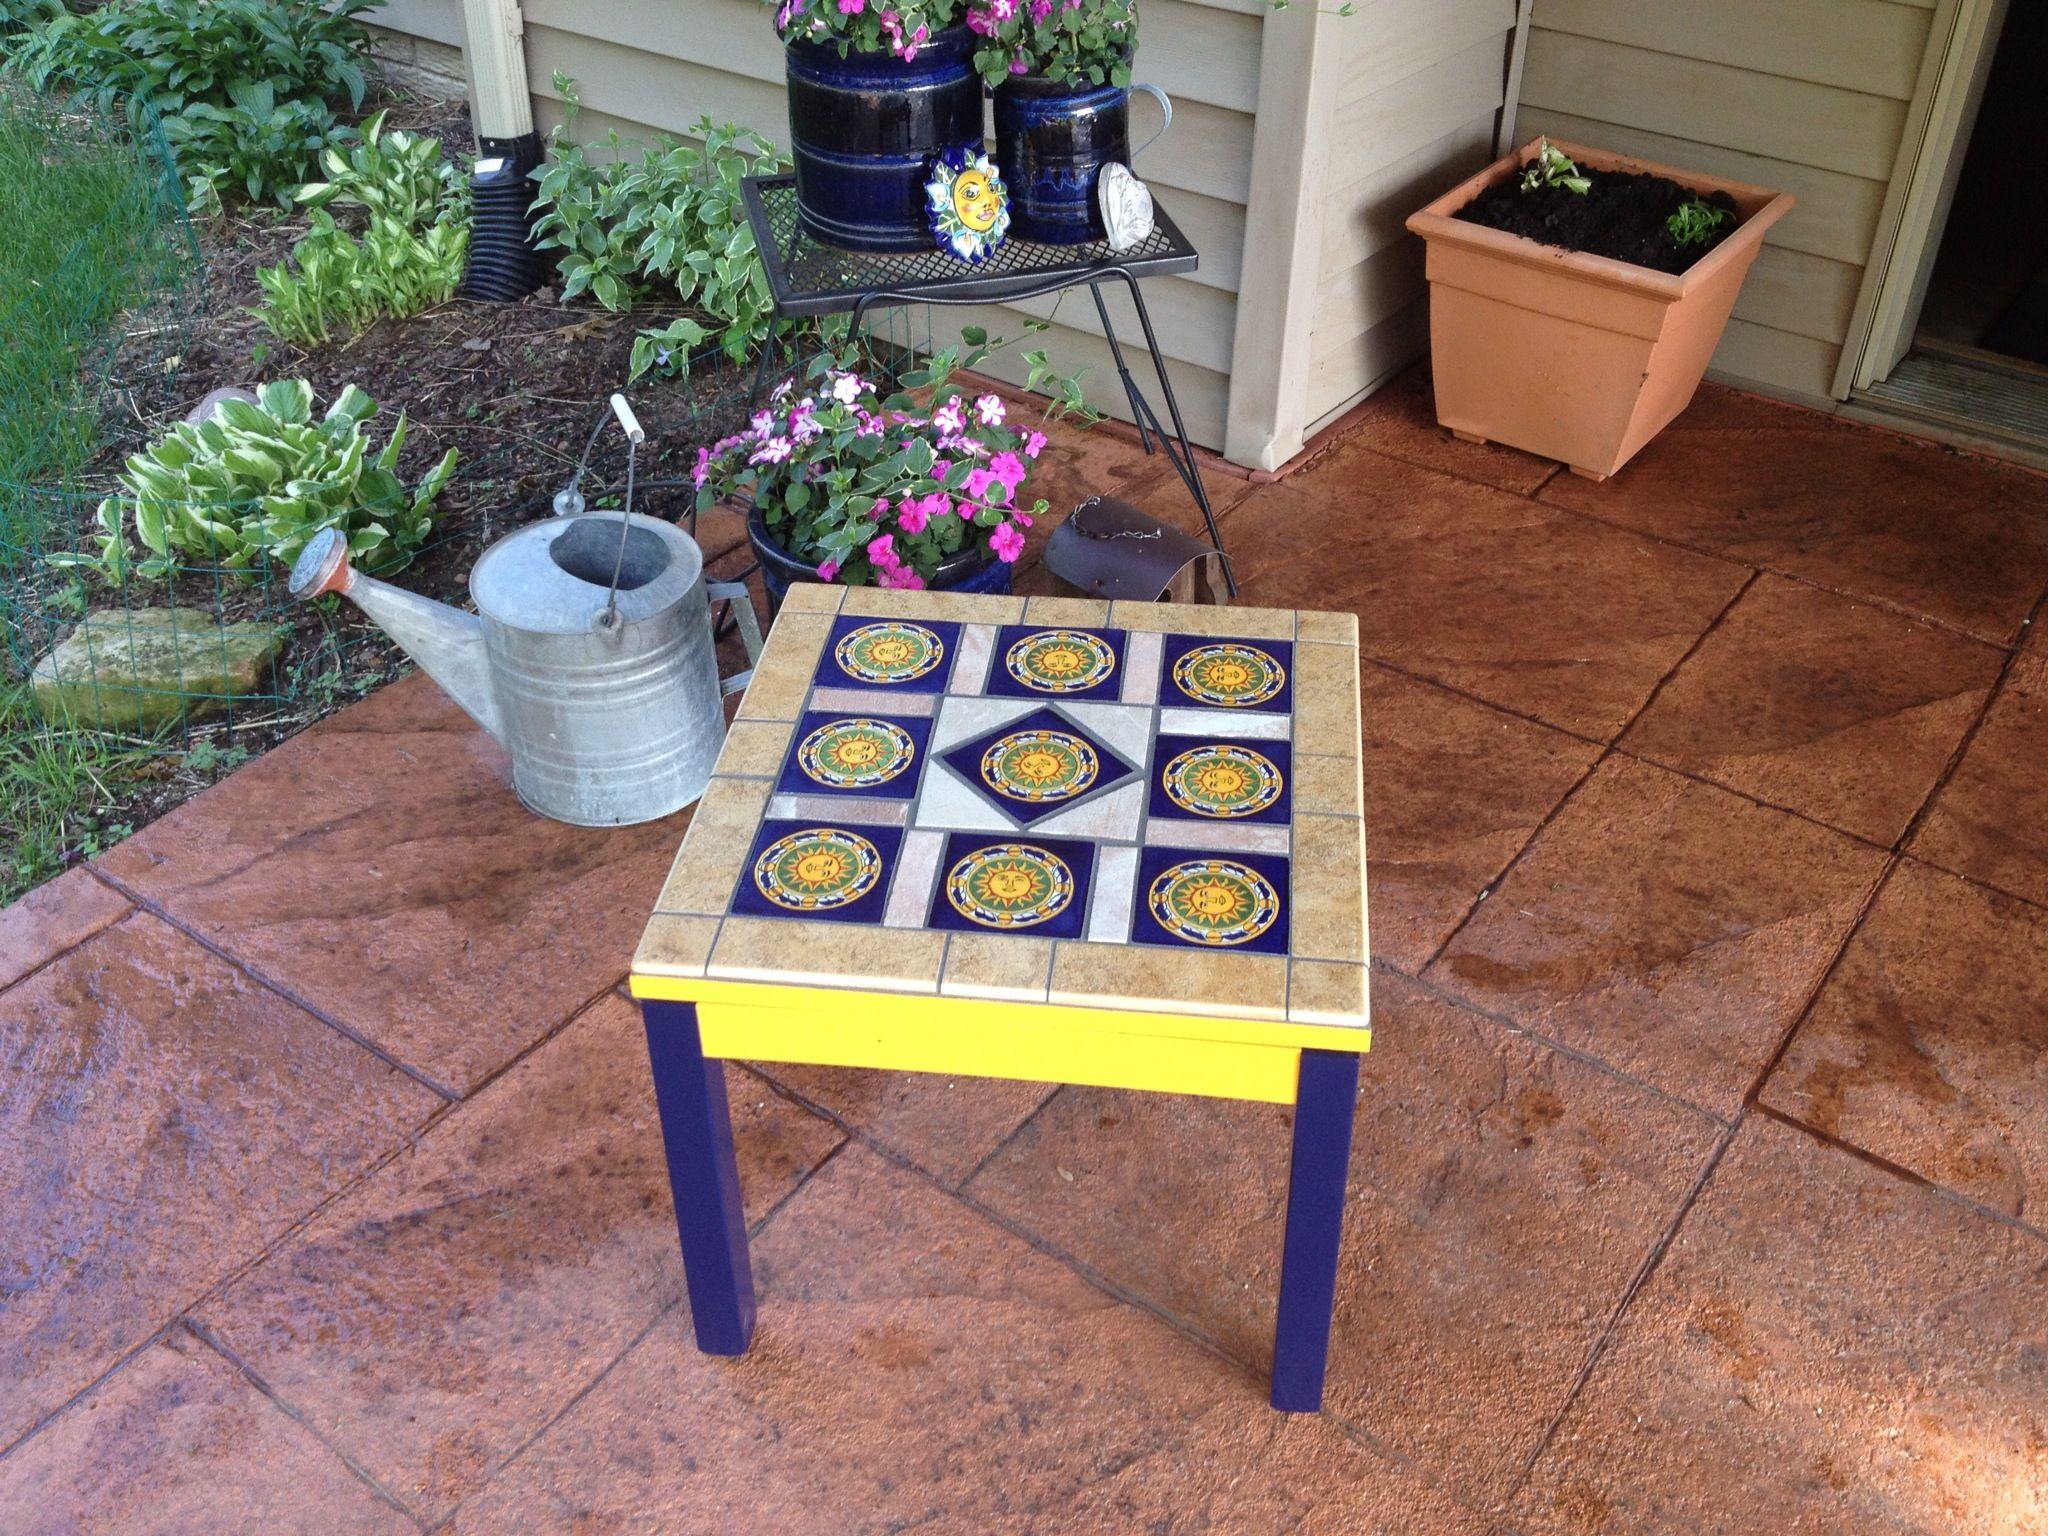 Fun Patio Table Made From Talavera Tiles, Spray Paint, And Leftover Tiles  From A